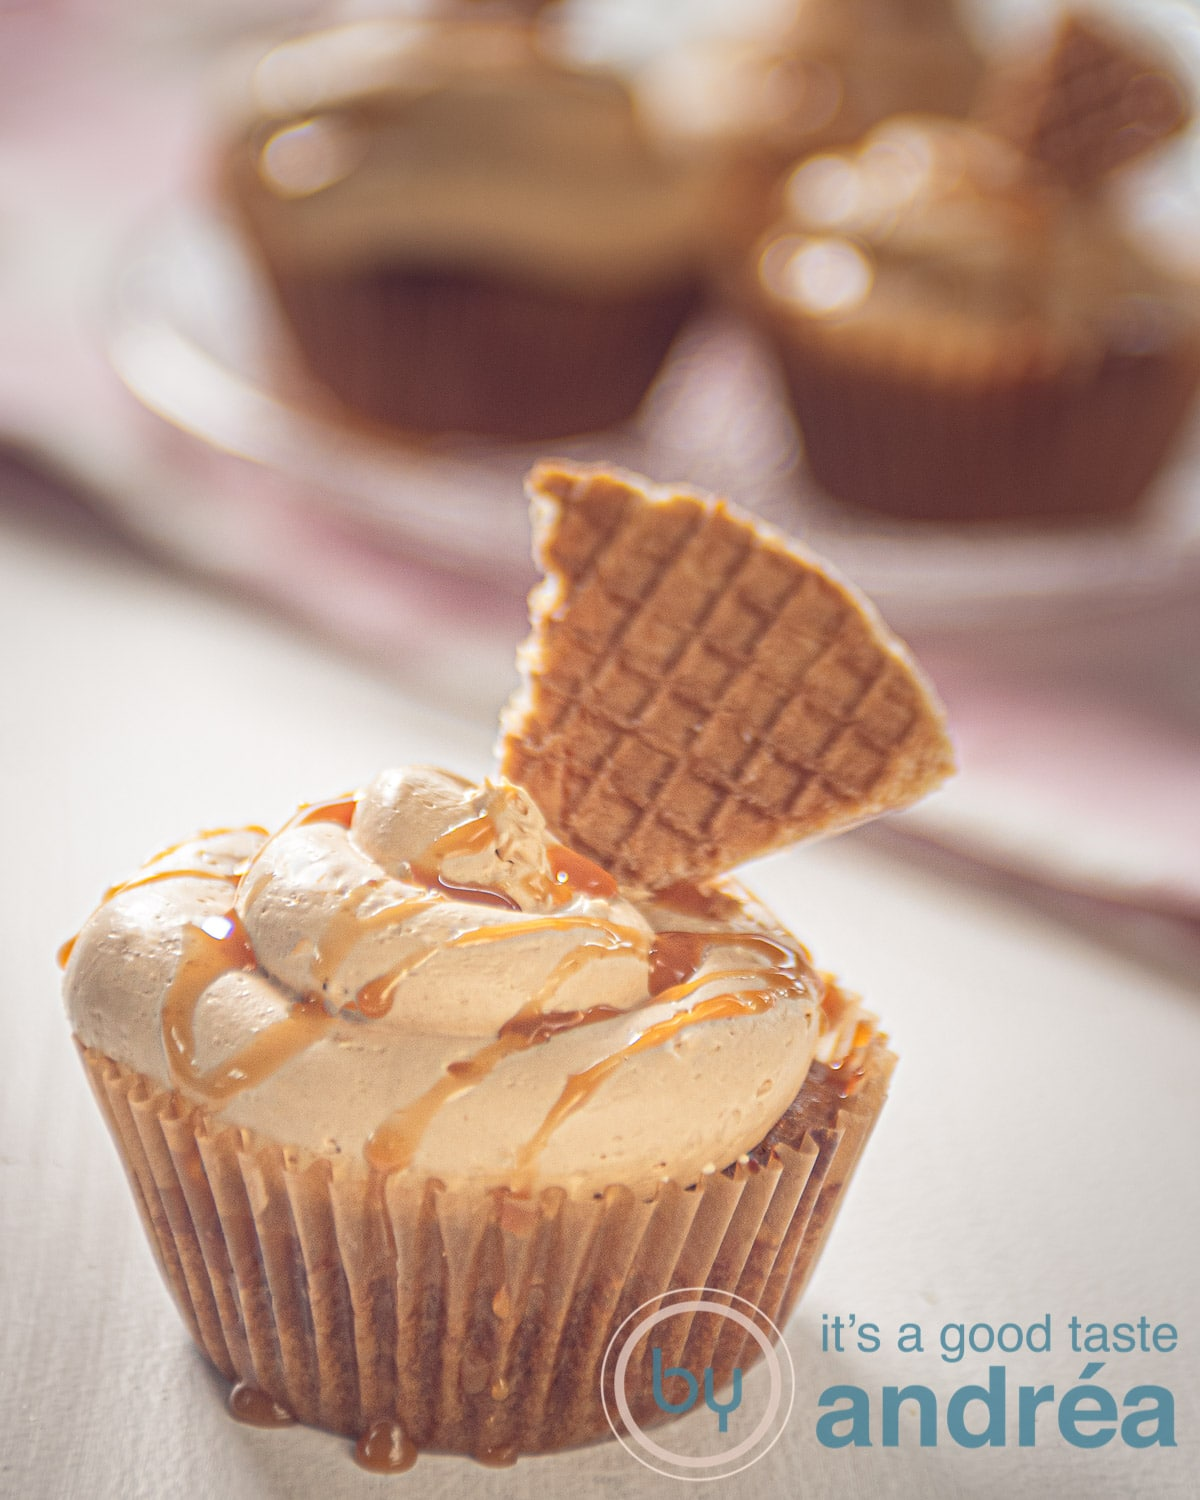 a stroopwafel cupcake in front and in the background some more